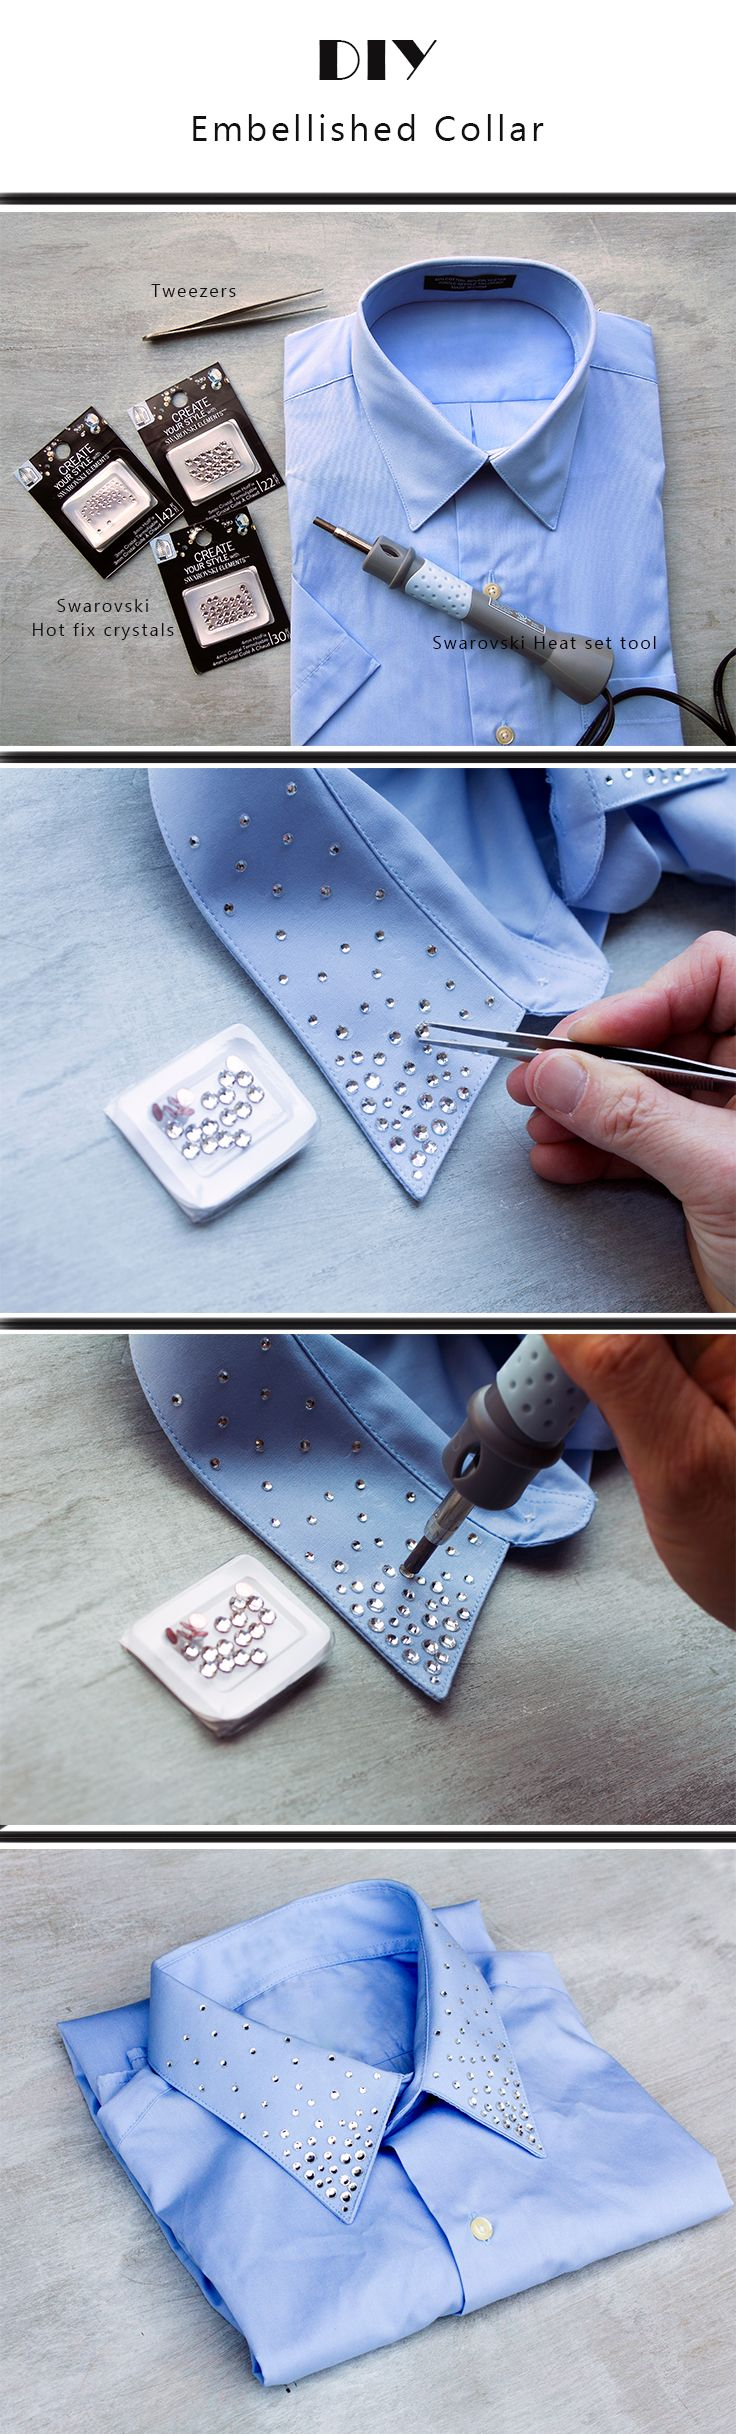 DIY Crystal Embellishments Collar